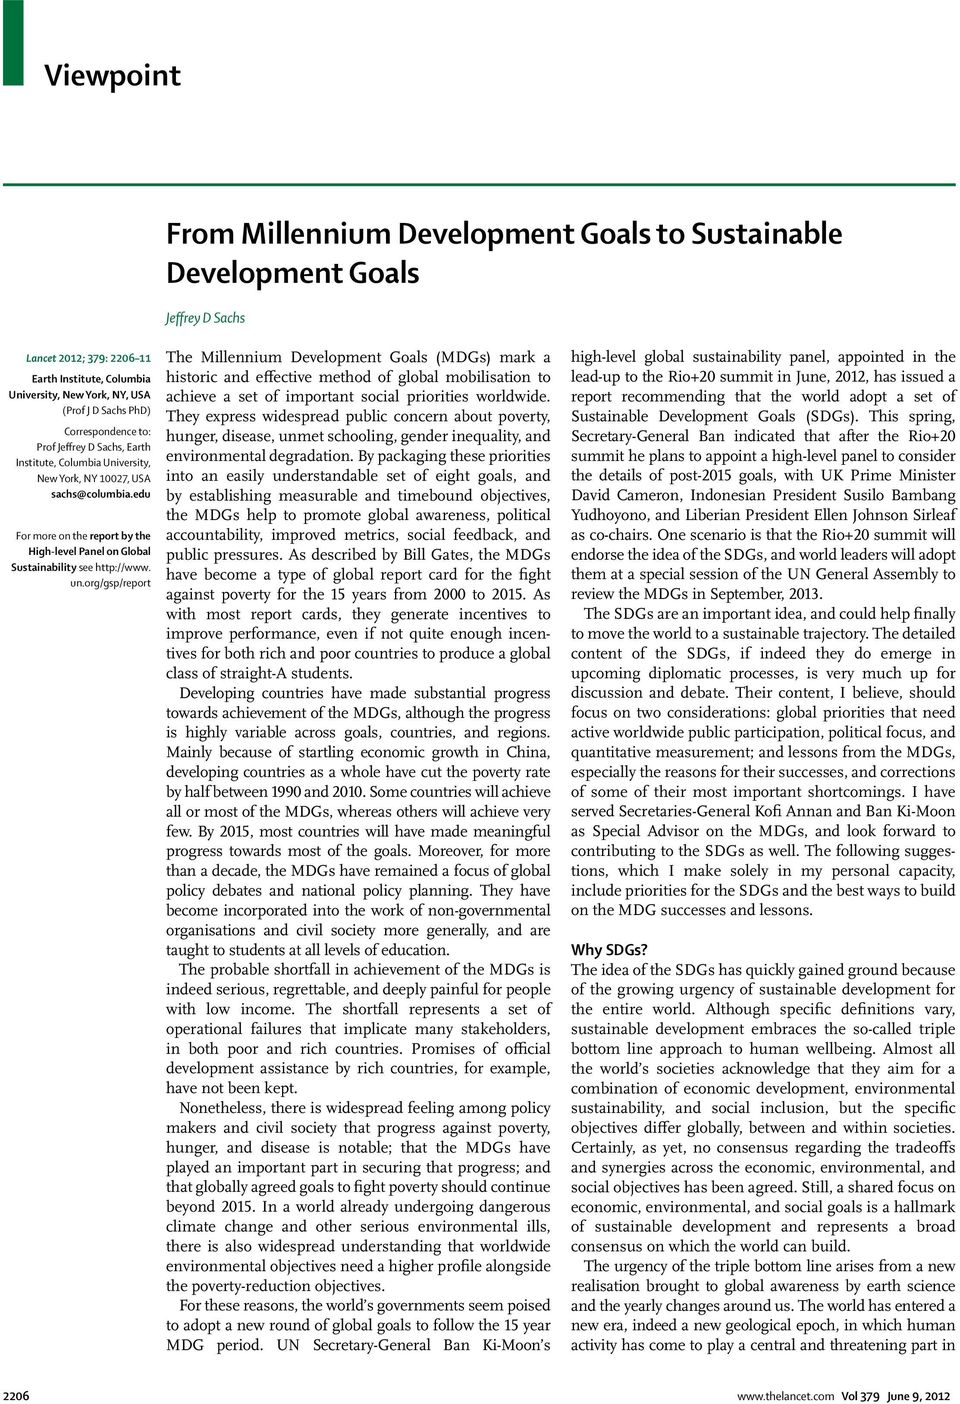 edu For more on the report by the High-level Panel on Global Sustainability see http://www. un.